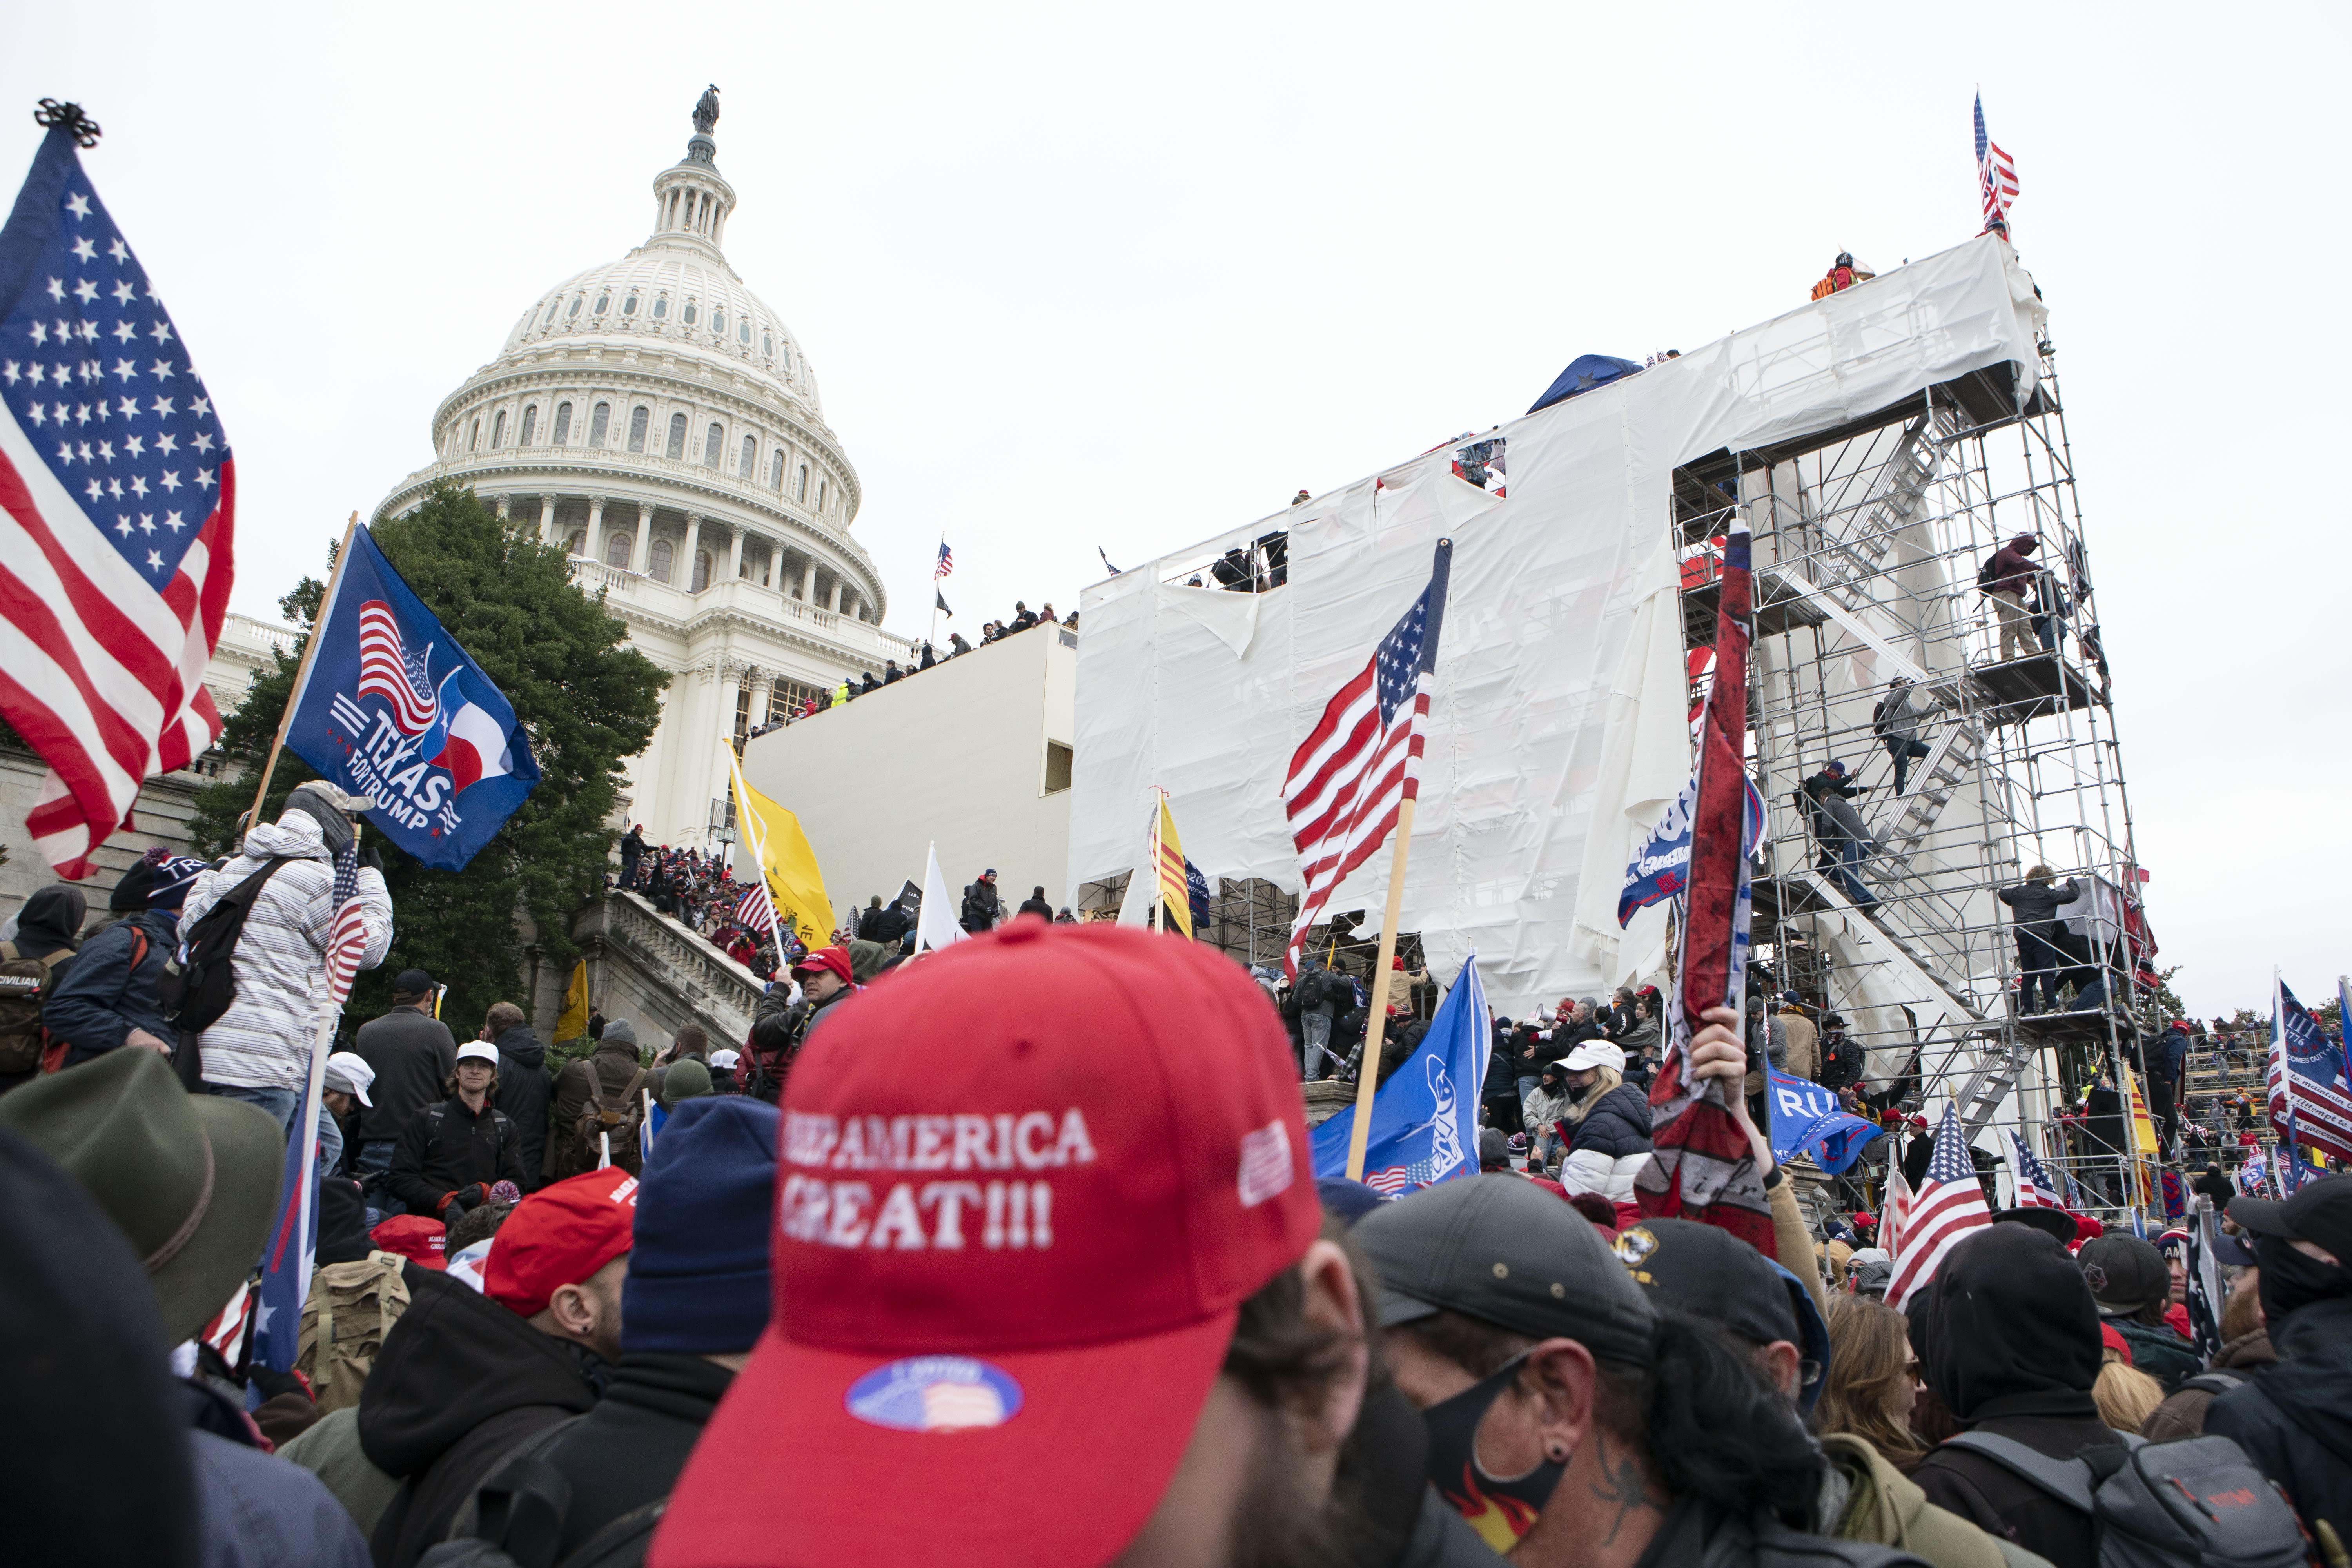 Capitol police were overrun,  little defense against rioters